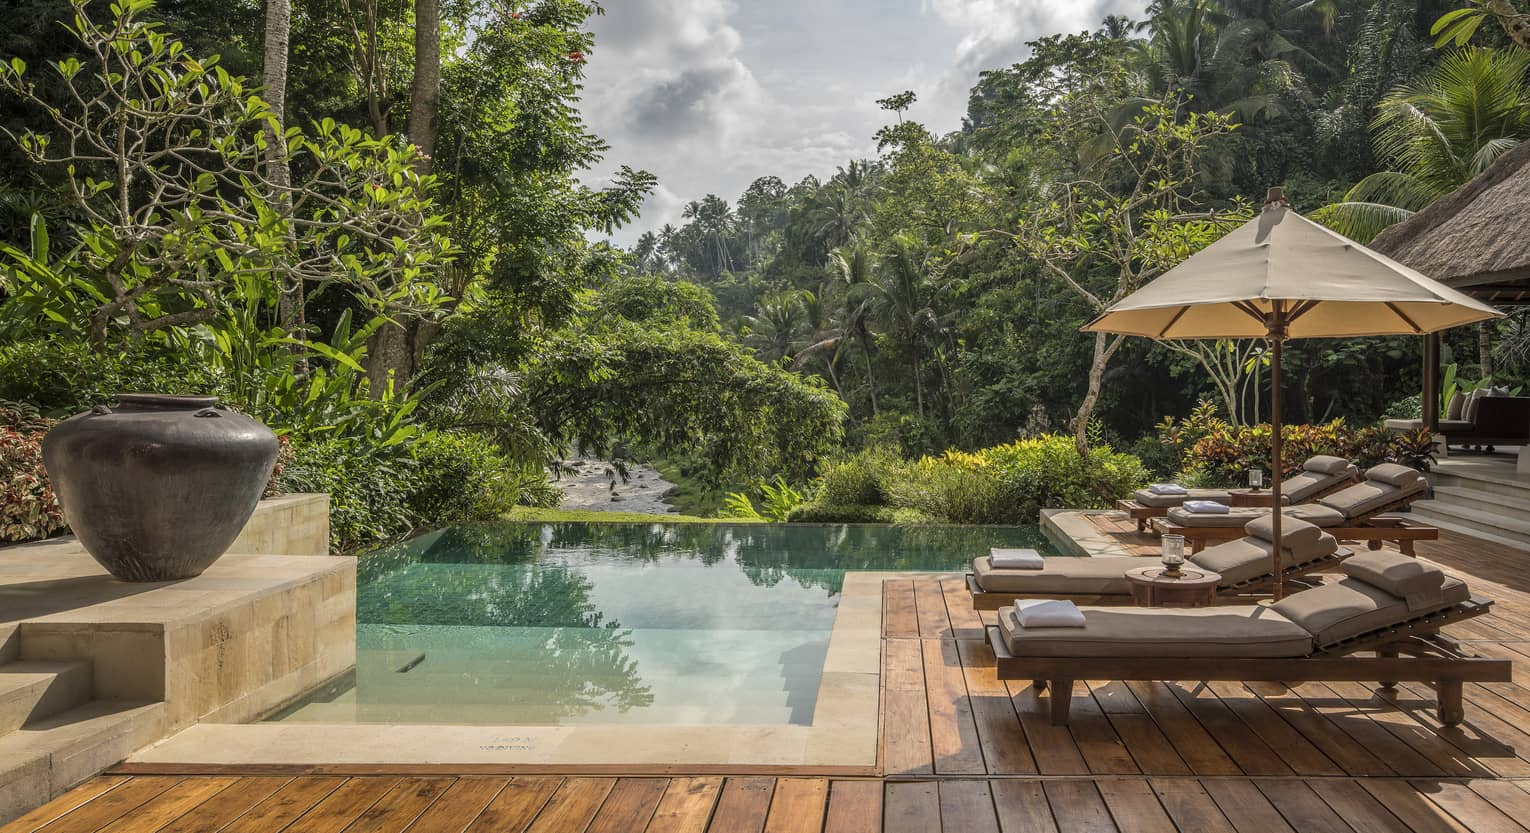 A relaxing villa with an infinity pool overlooking a river in Bali